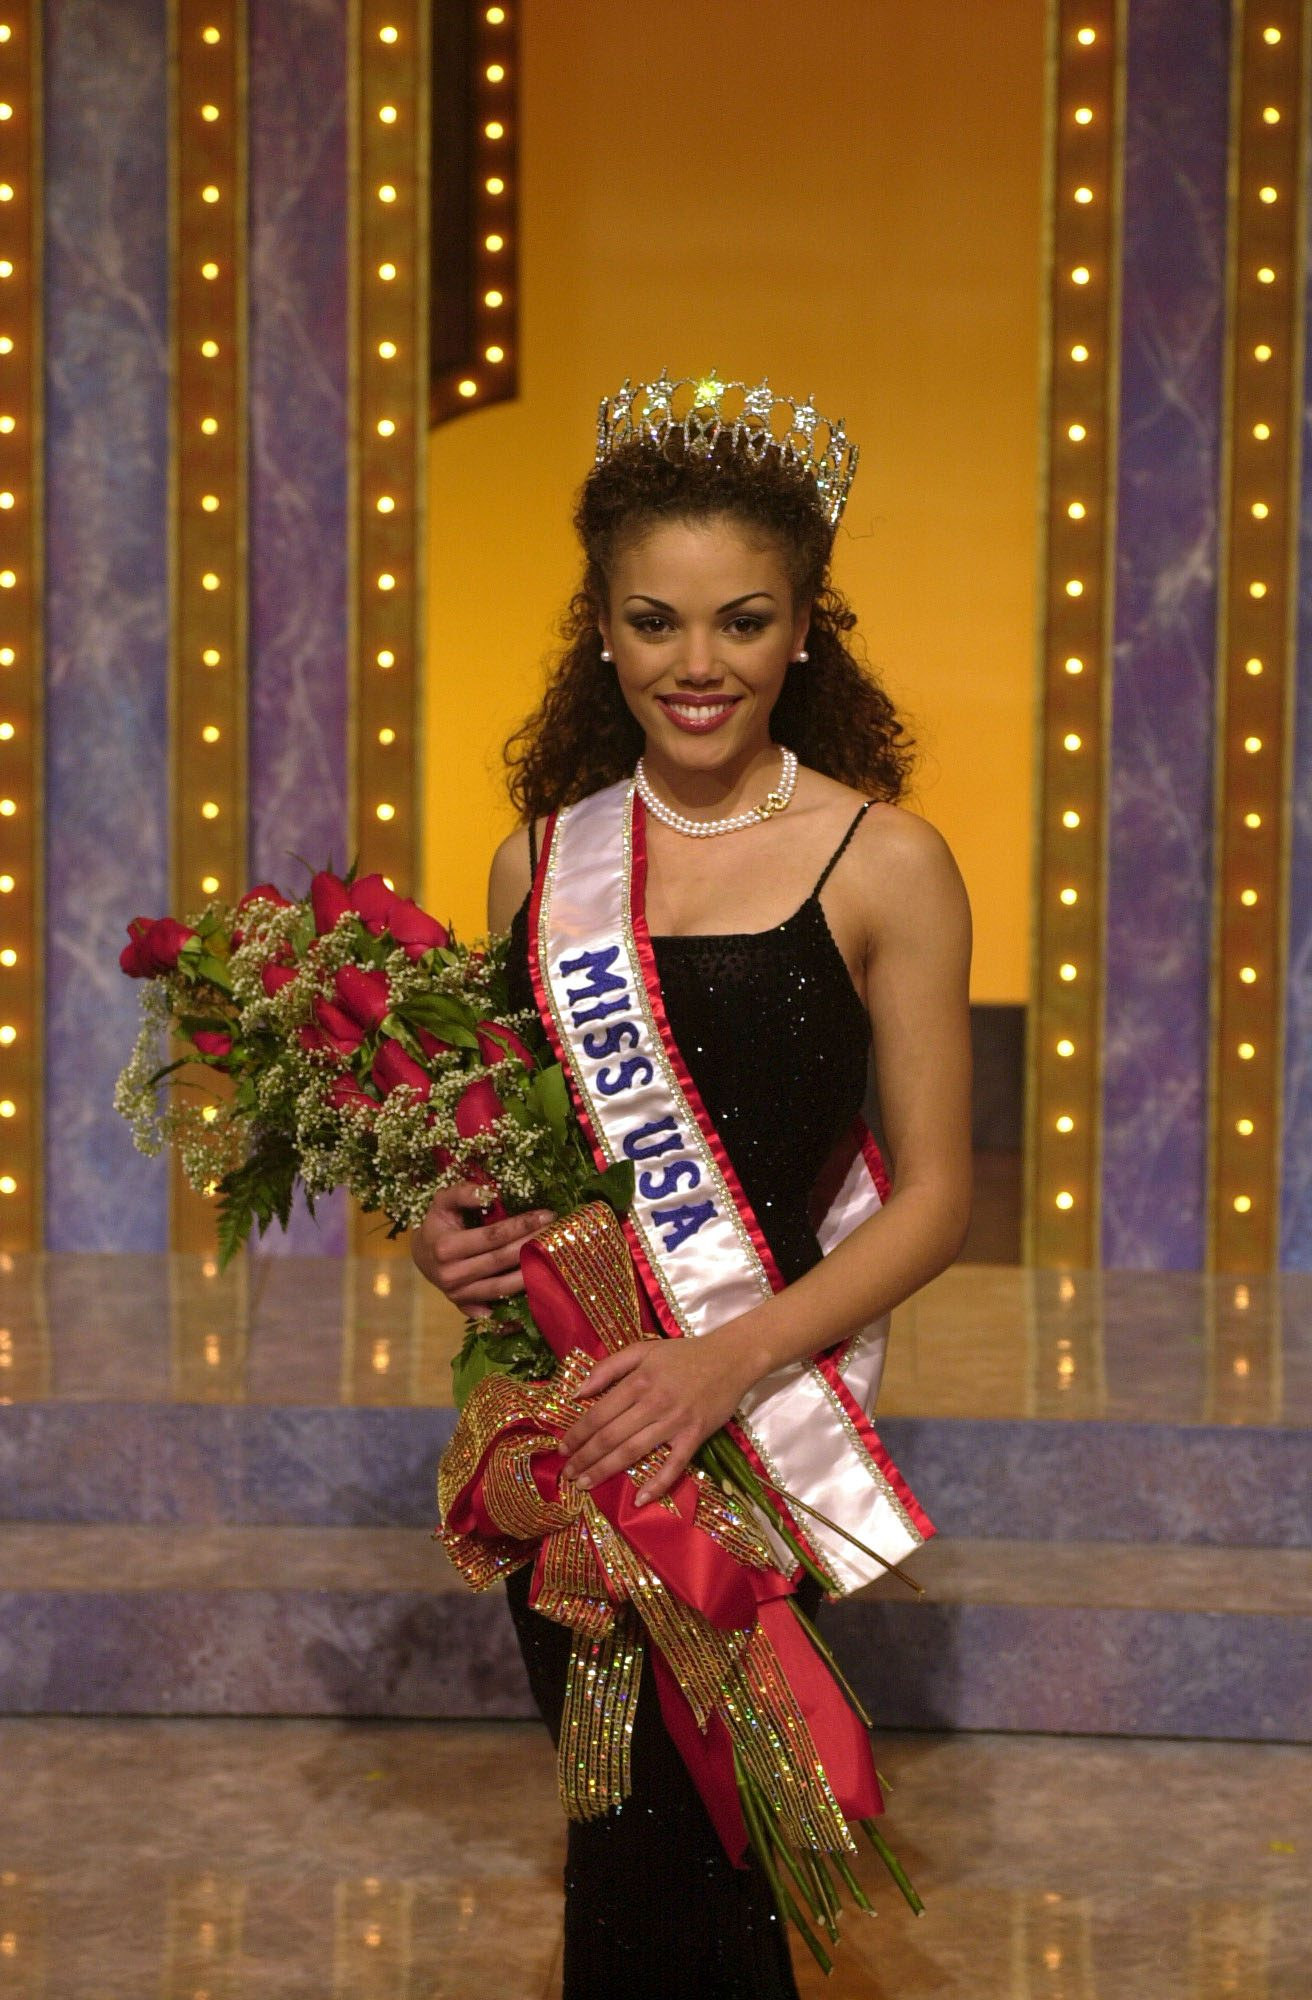 The new Miss USA 2000, Lynnette Cole of Columbia